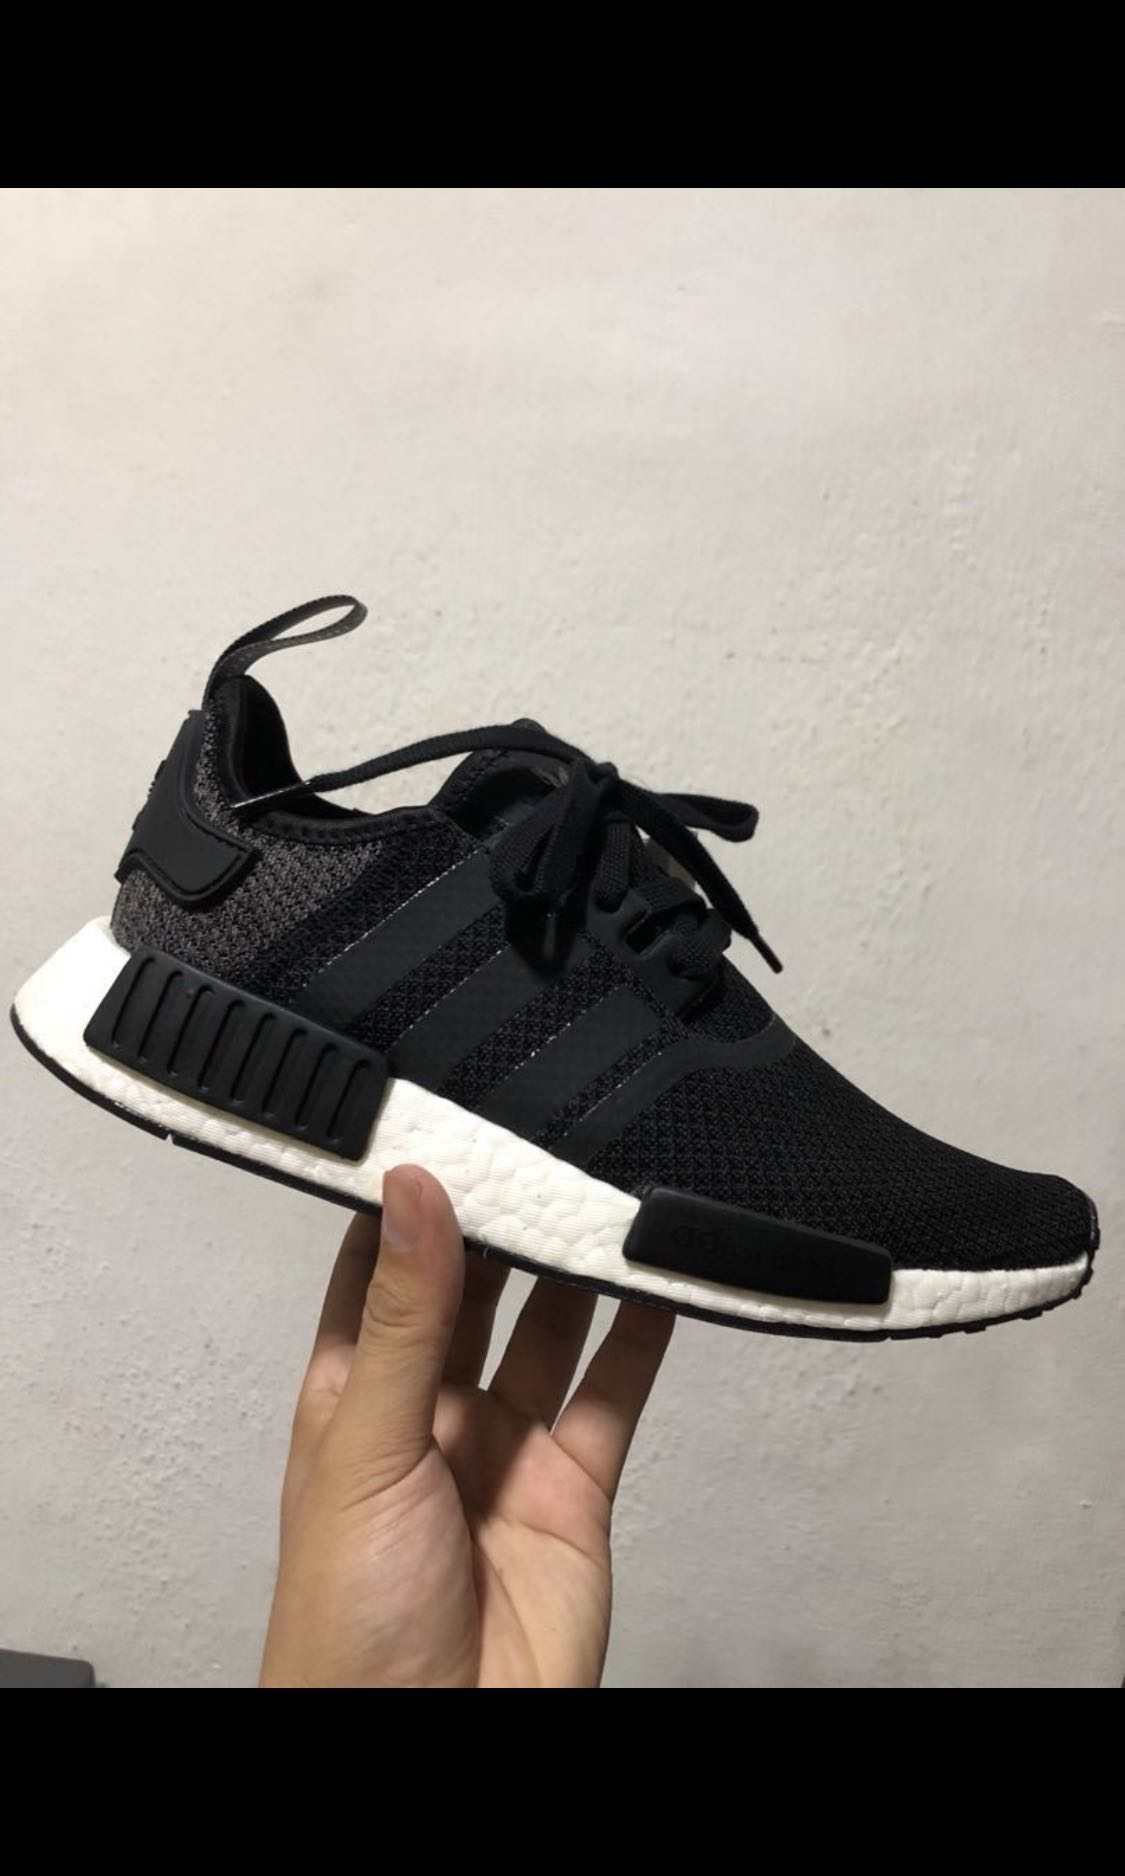 best website 17d26 297a2 Adidas NMD R1 Black Grey Mesh, Mens Fashion, Footwear, Sneakers on  Carousell